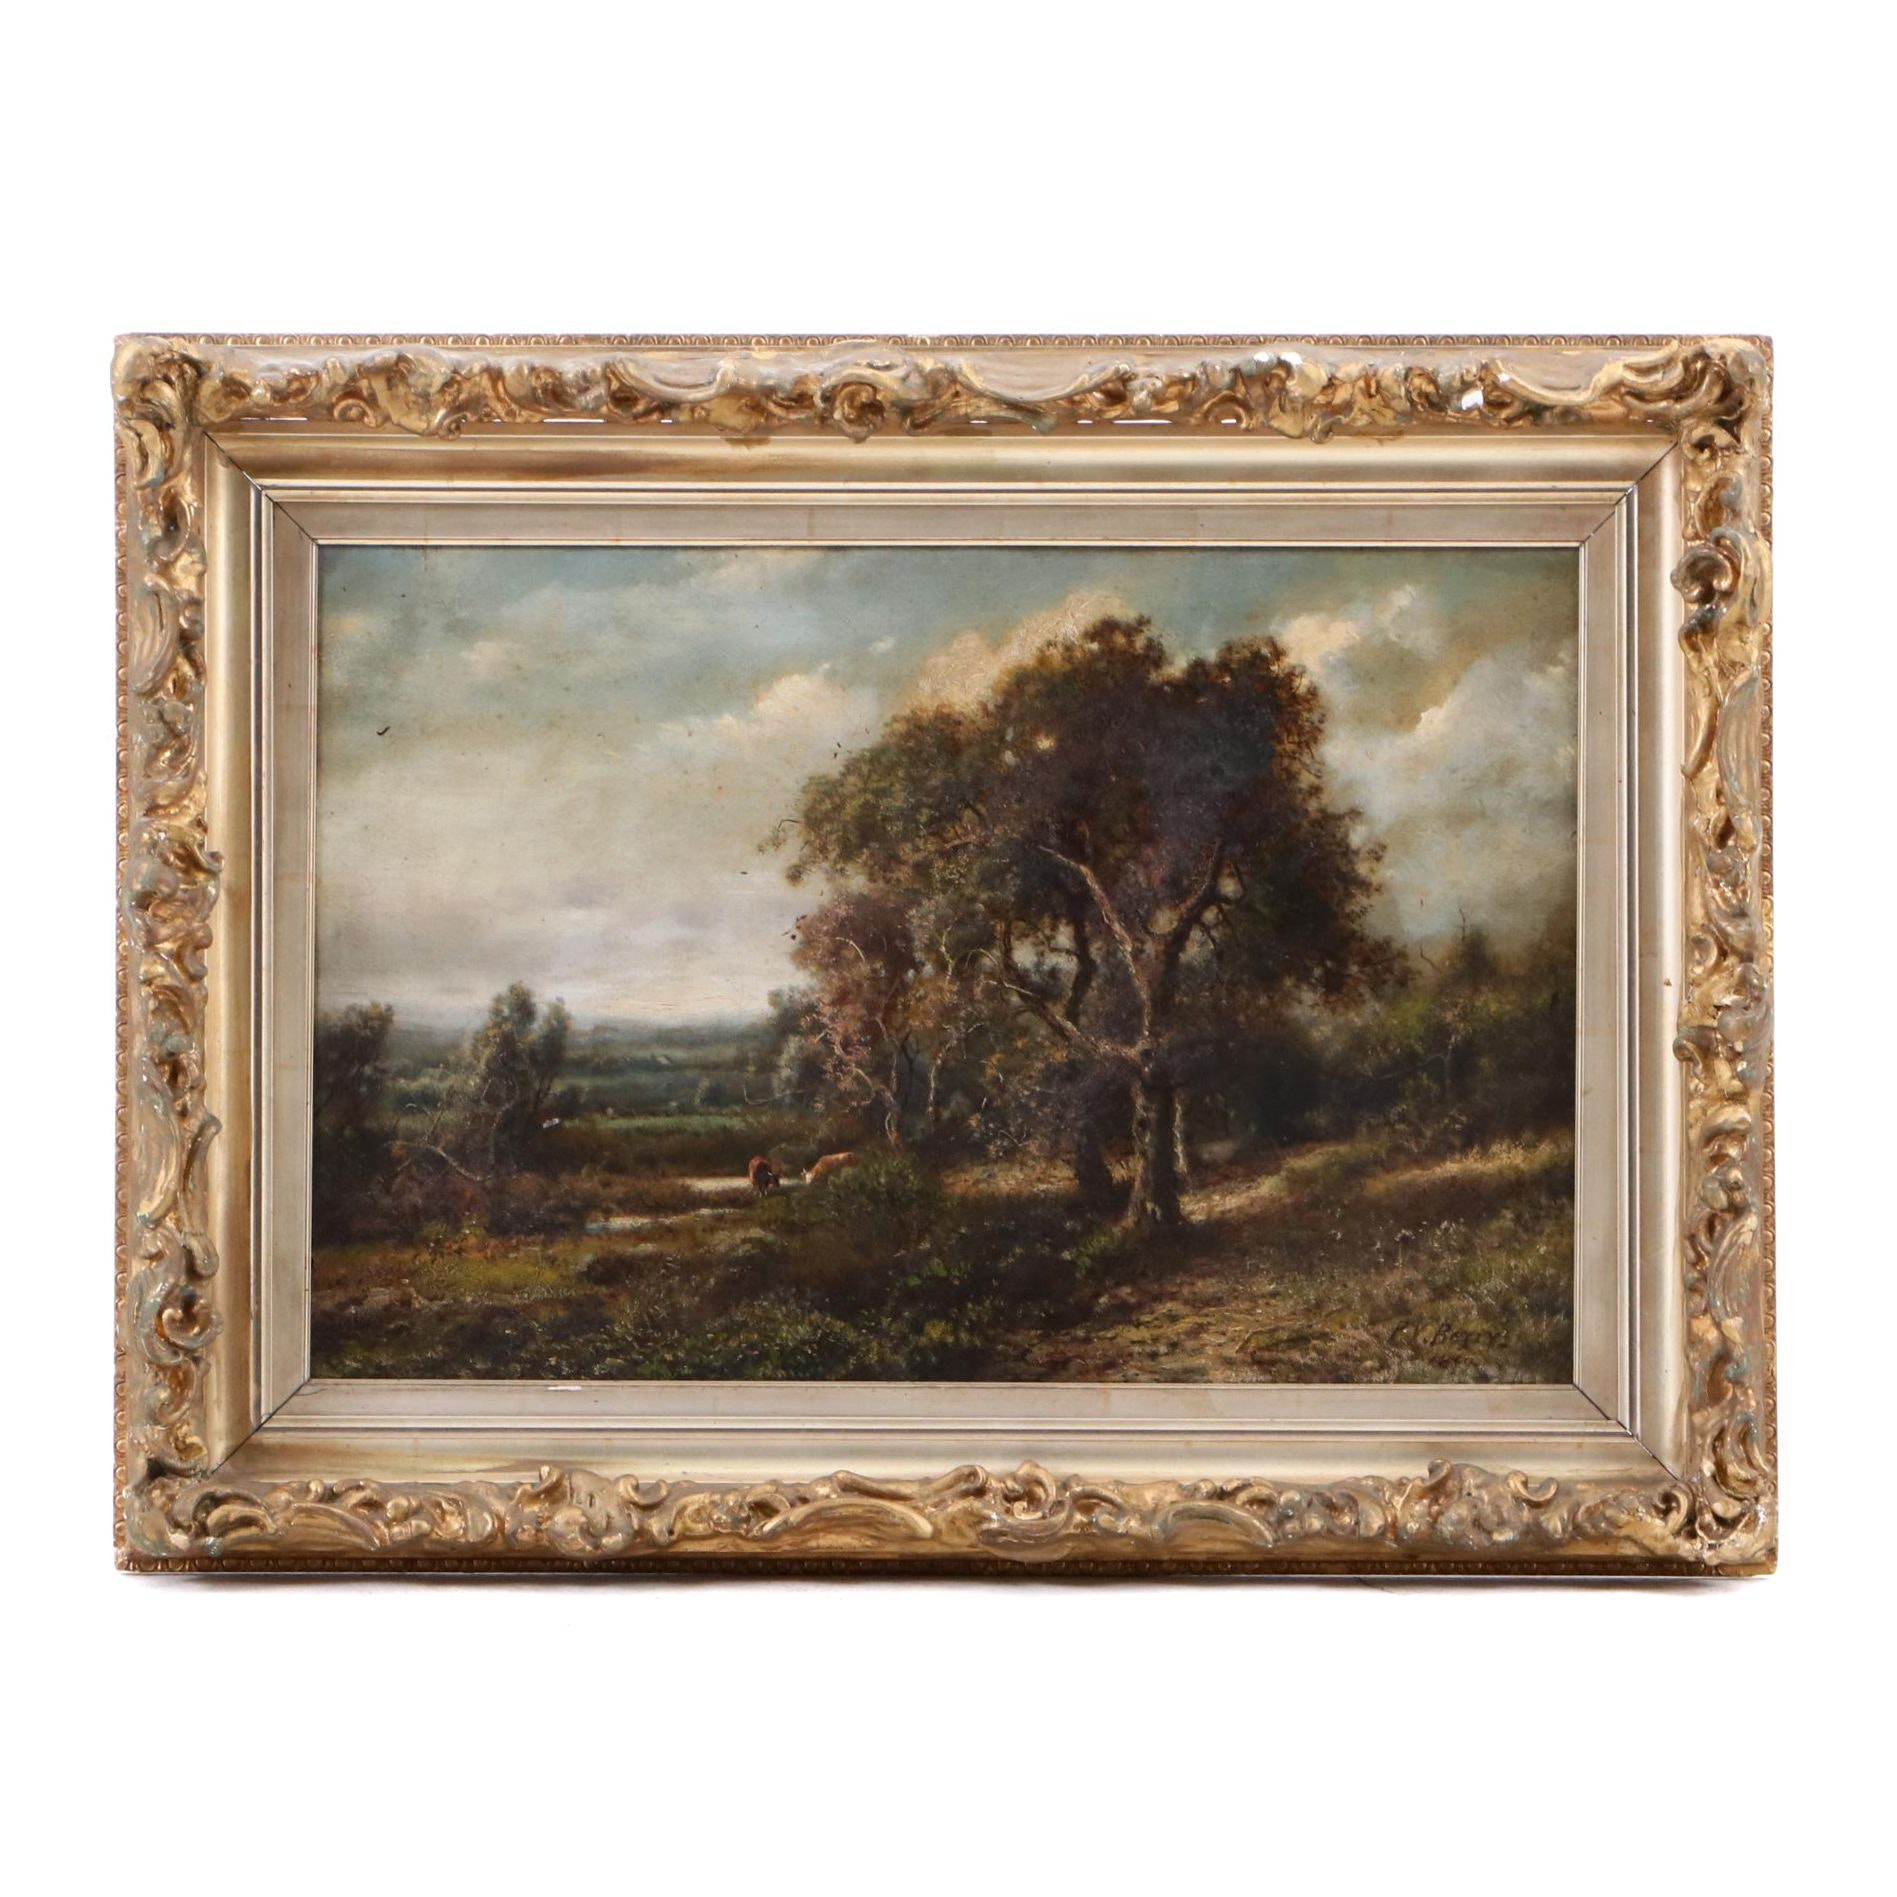 Patrick Vincent Berry 1899 Oil Painting of Cattle in Pastoral Landscape